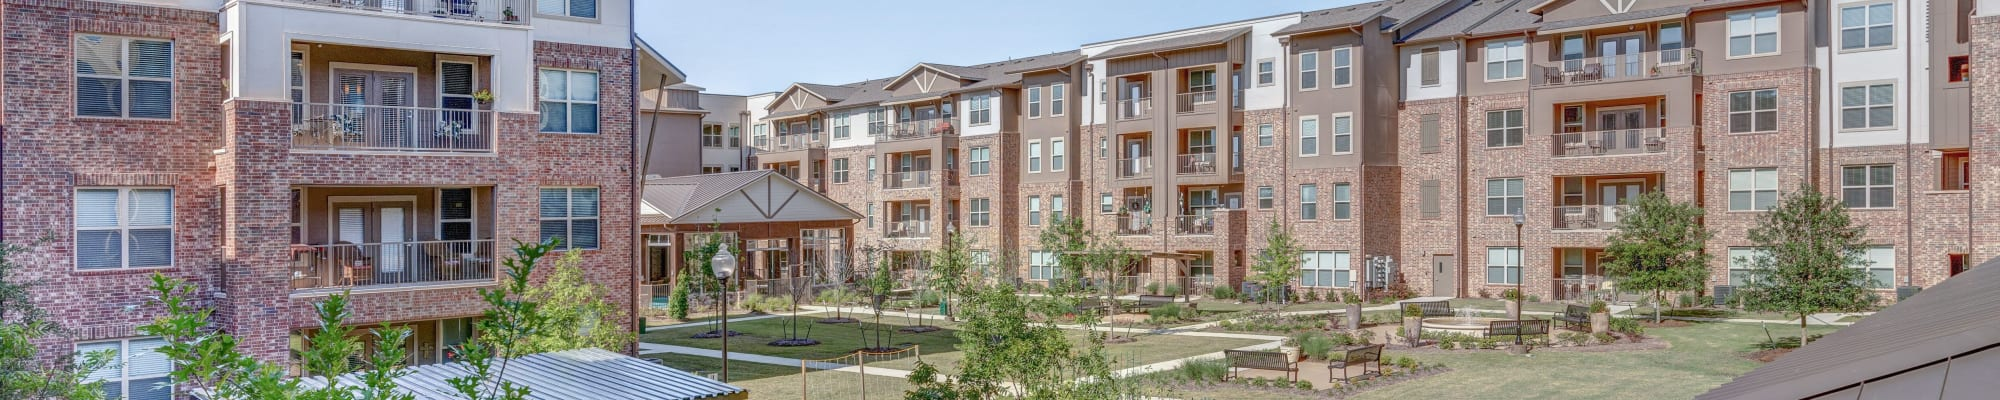 Cost of living comparison for Watercrest at Katy in Katy, Texas